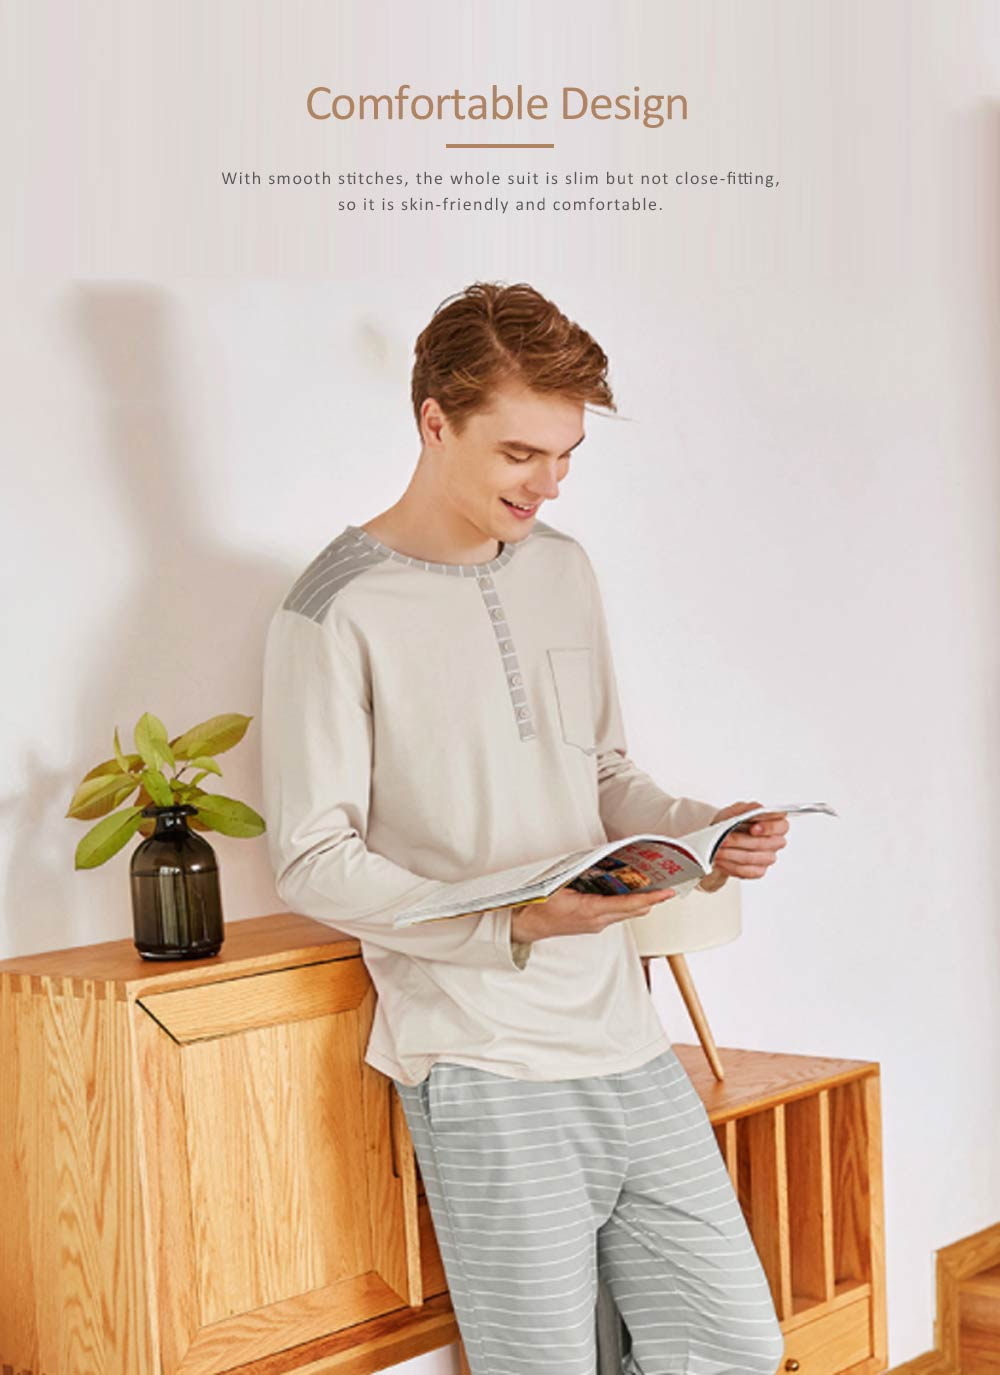 Men's Long-sleeved Casual Knit Pajama Suit with Round-neck Design, Breathable & Soft Household Clothes for Spring Autumn 4